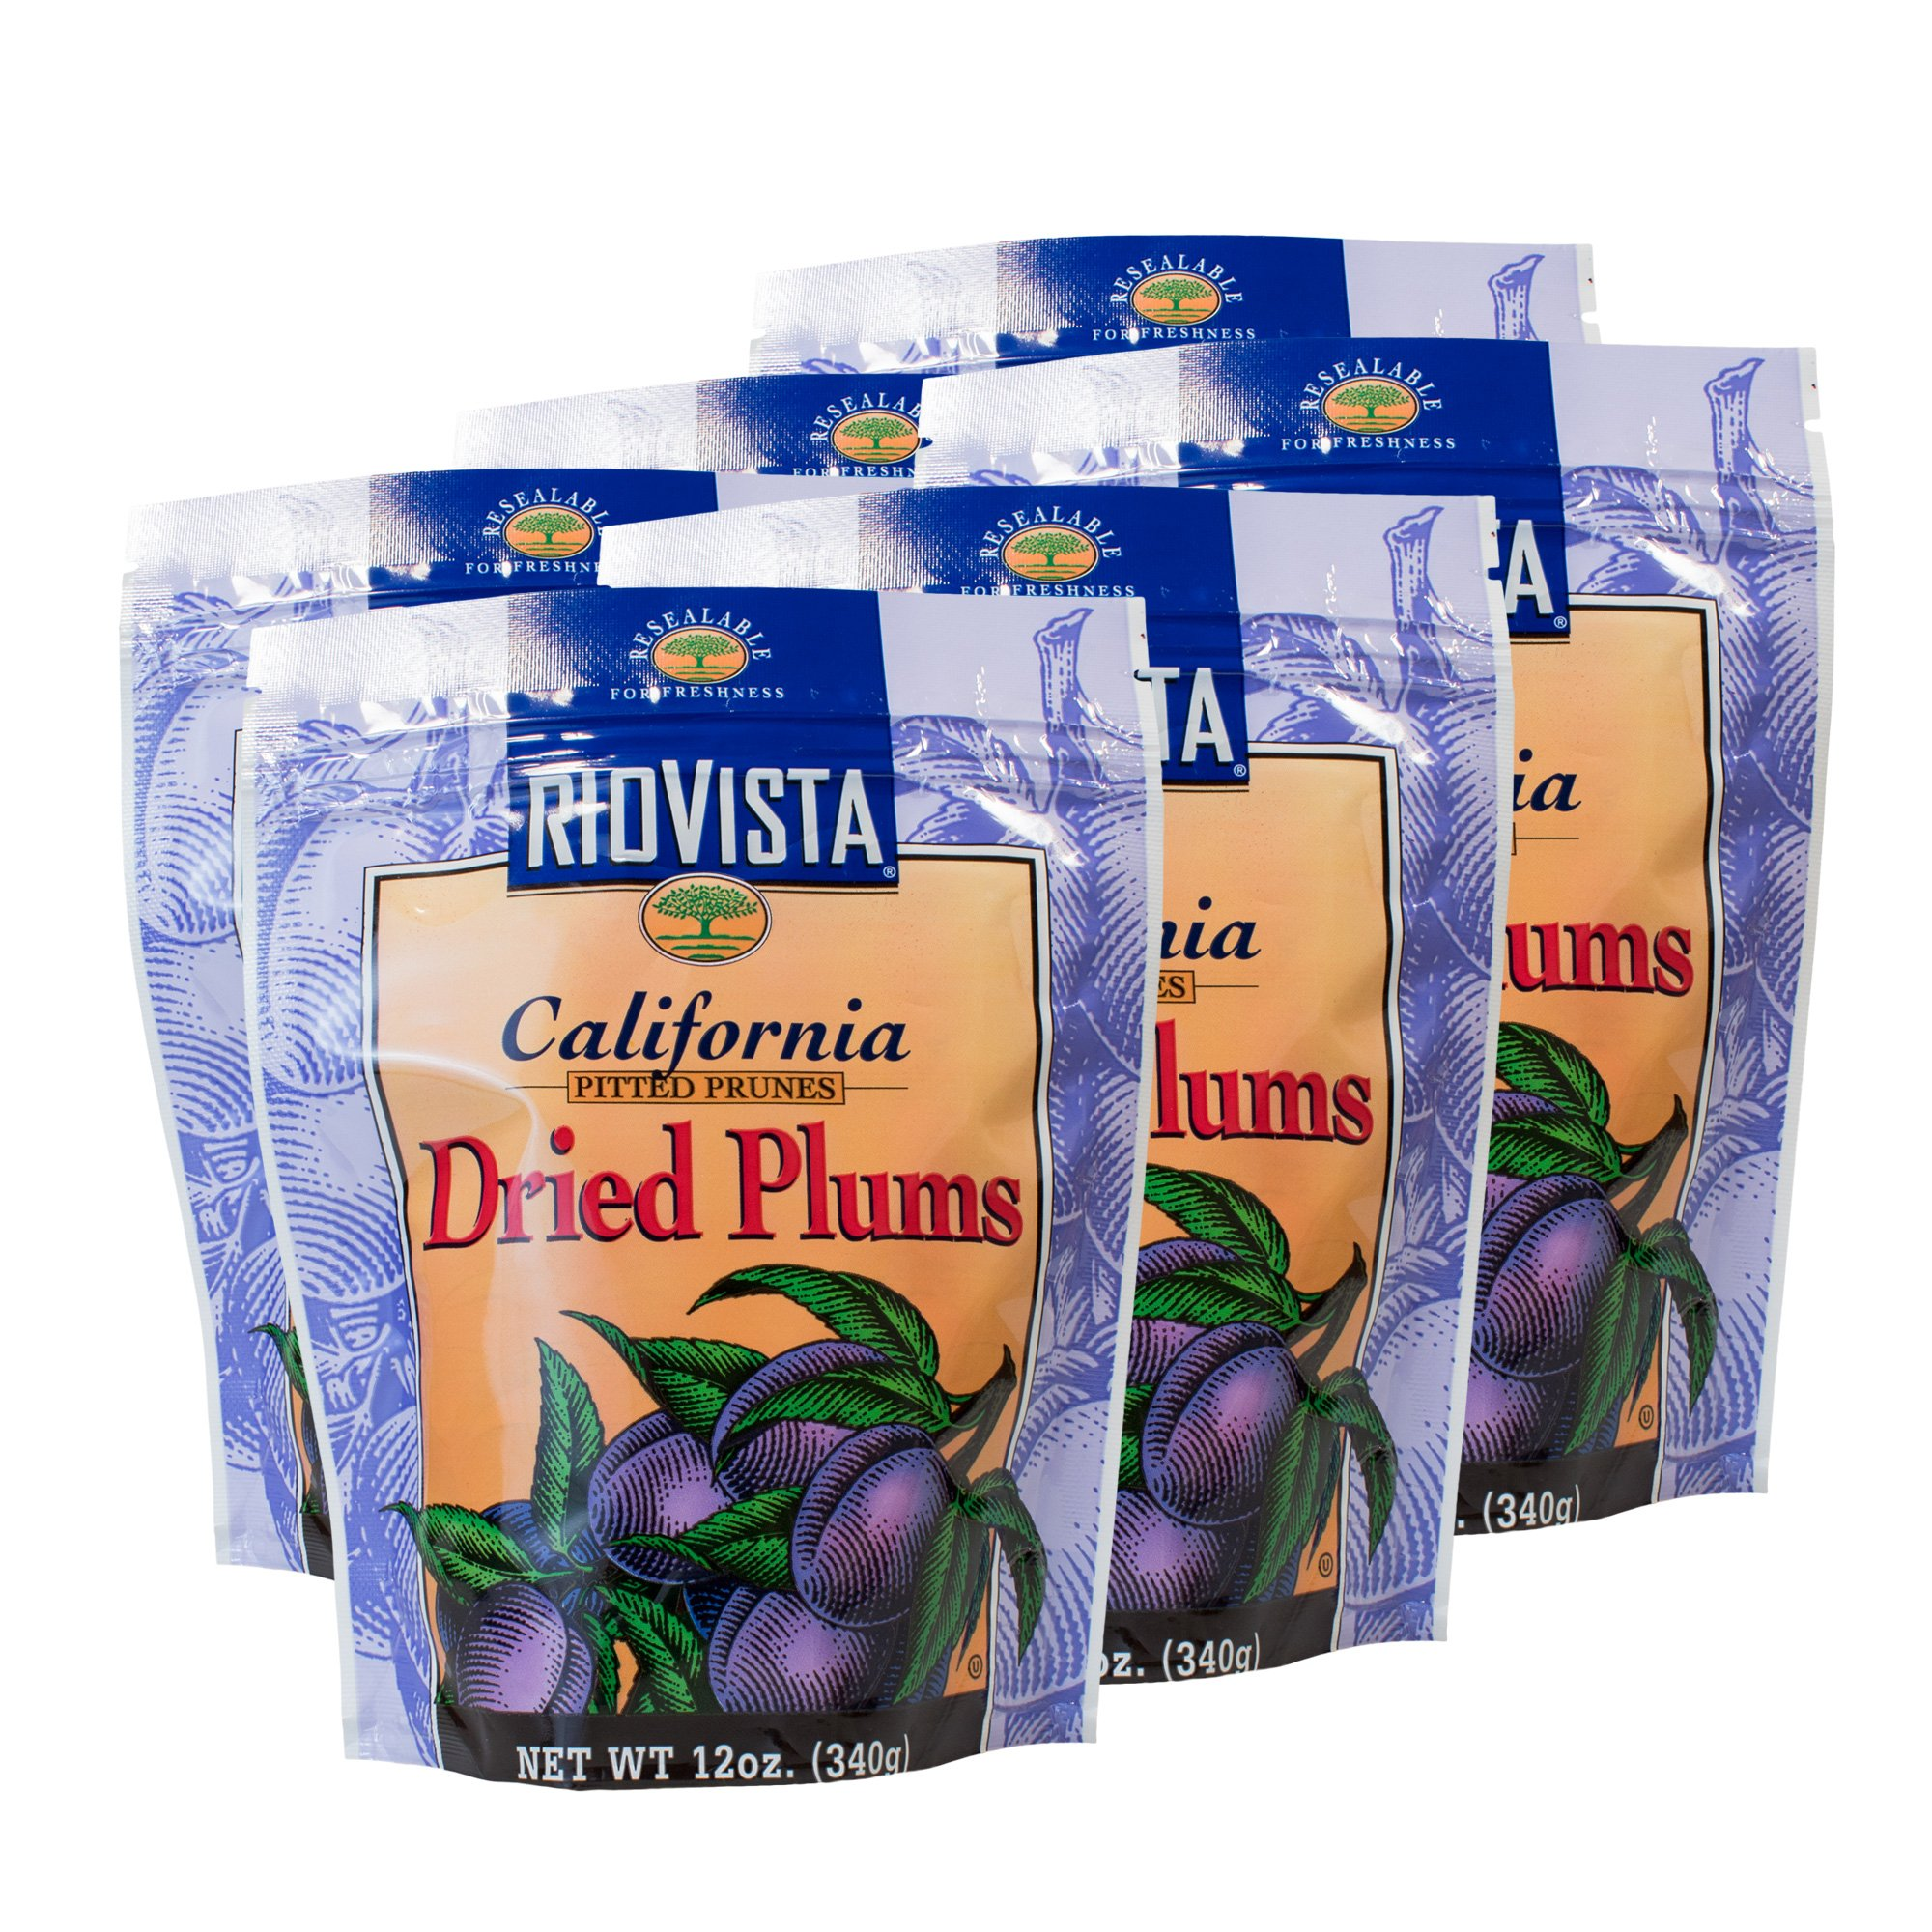 Wilbur Packing Company California Dried Plums, Pitted Prunes - 12oz. Bag (6 Pack) by Wilbur Packing Company